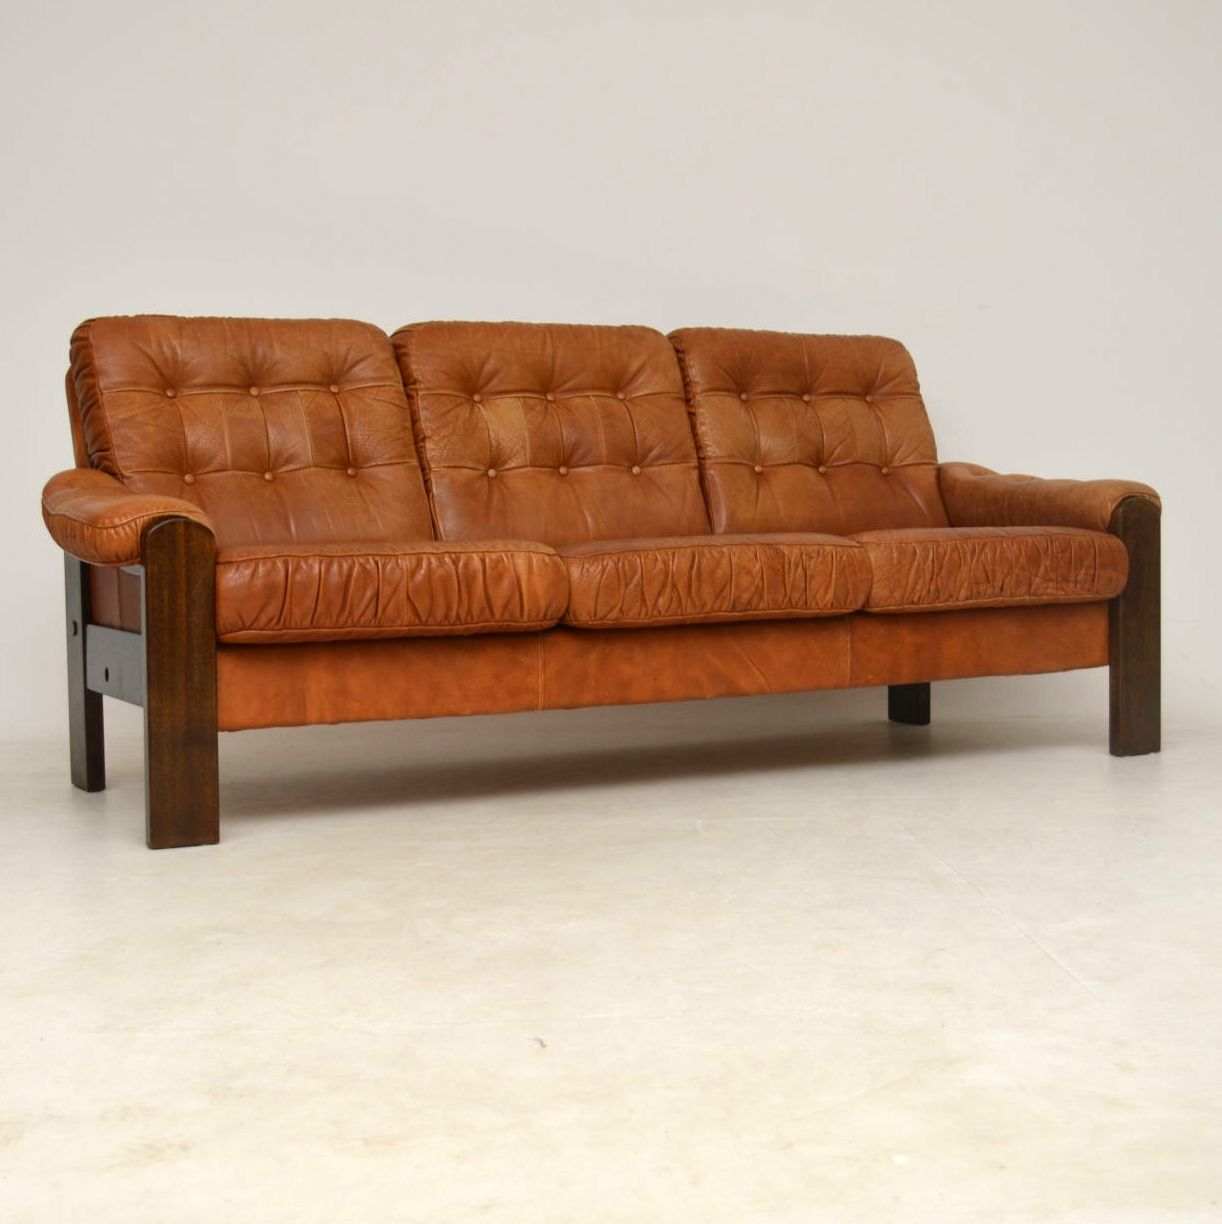 Second Hand Leather Sofas Second Hand Sofas Aionme Co